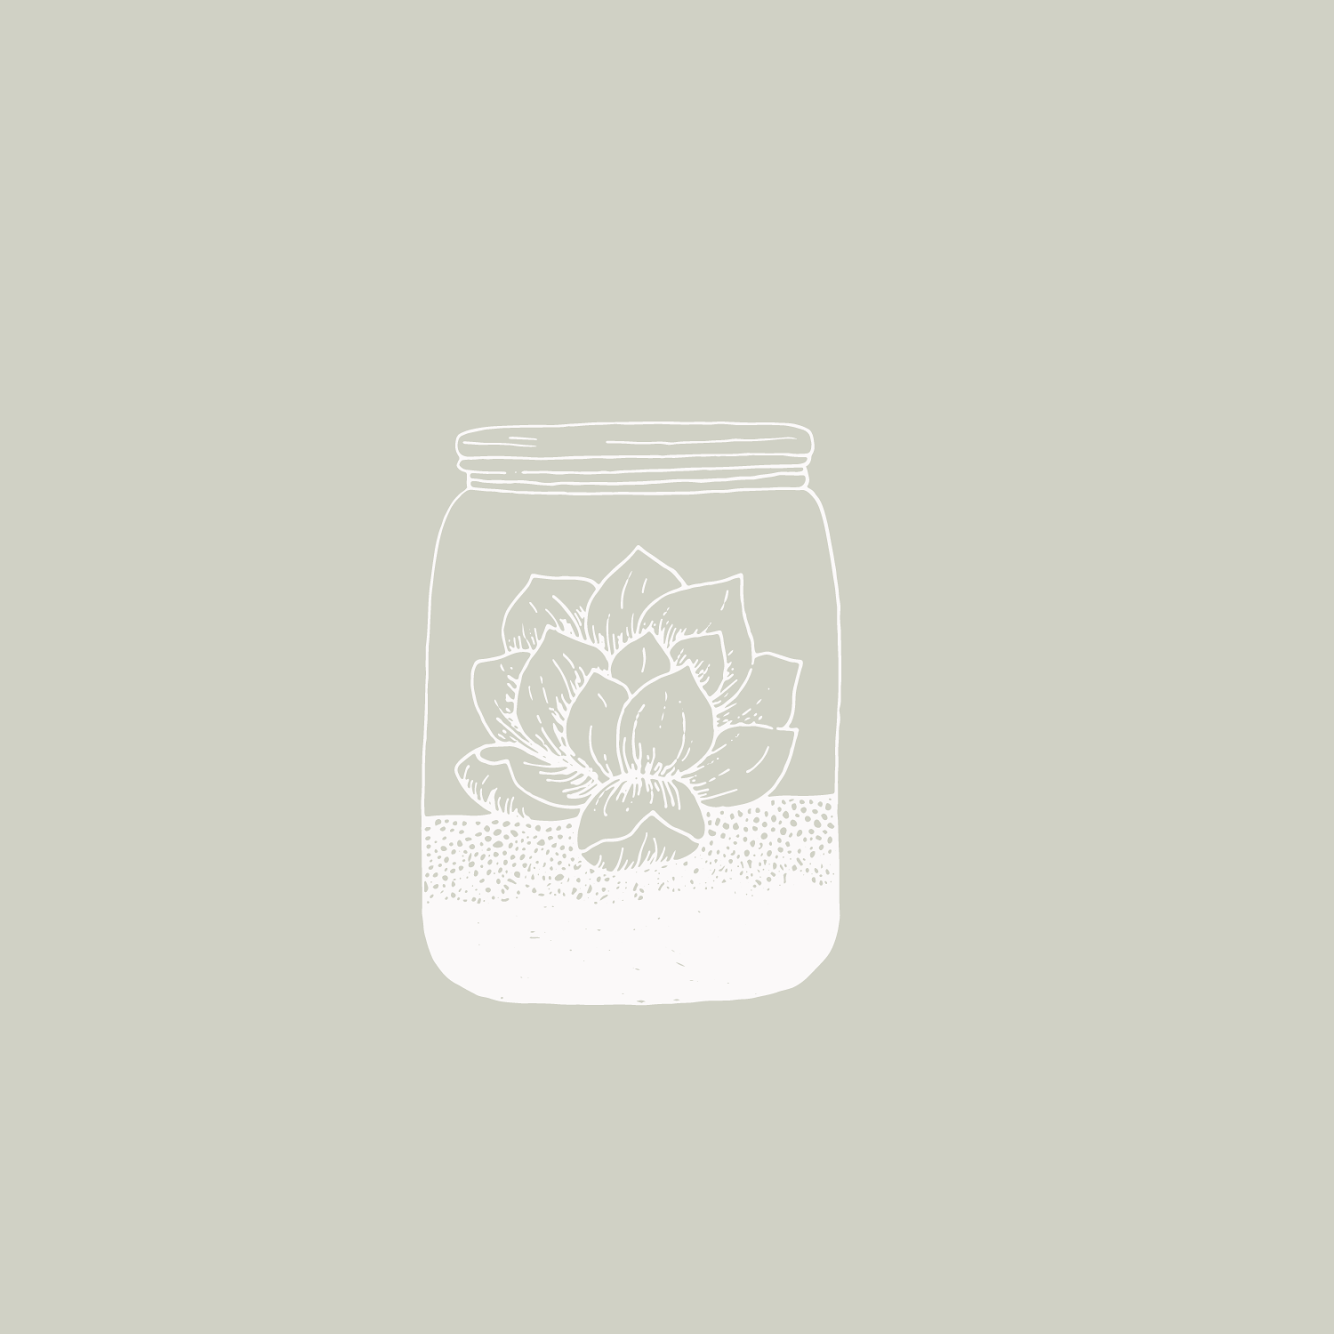 Illustration from thedayproject succulent plant house